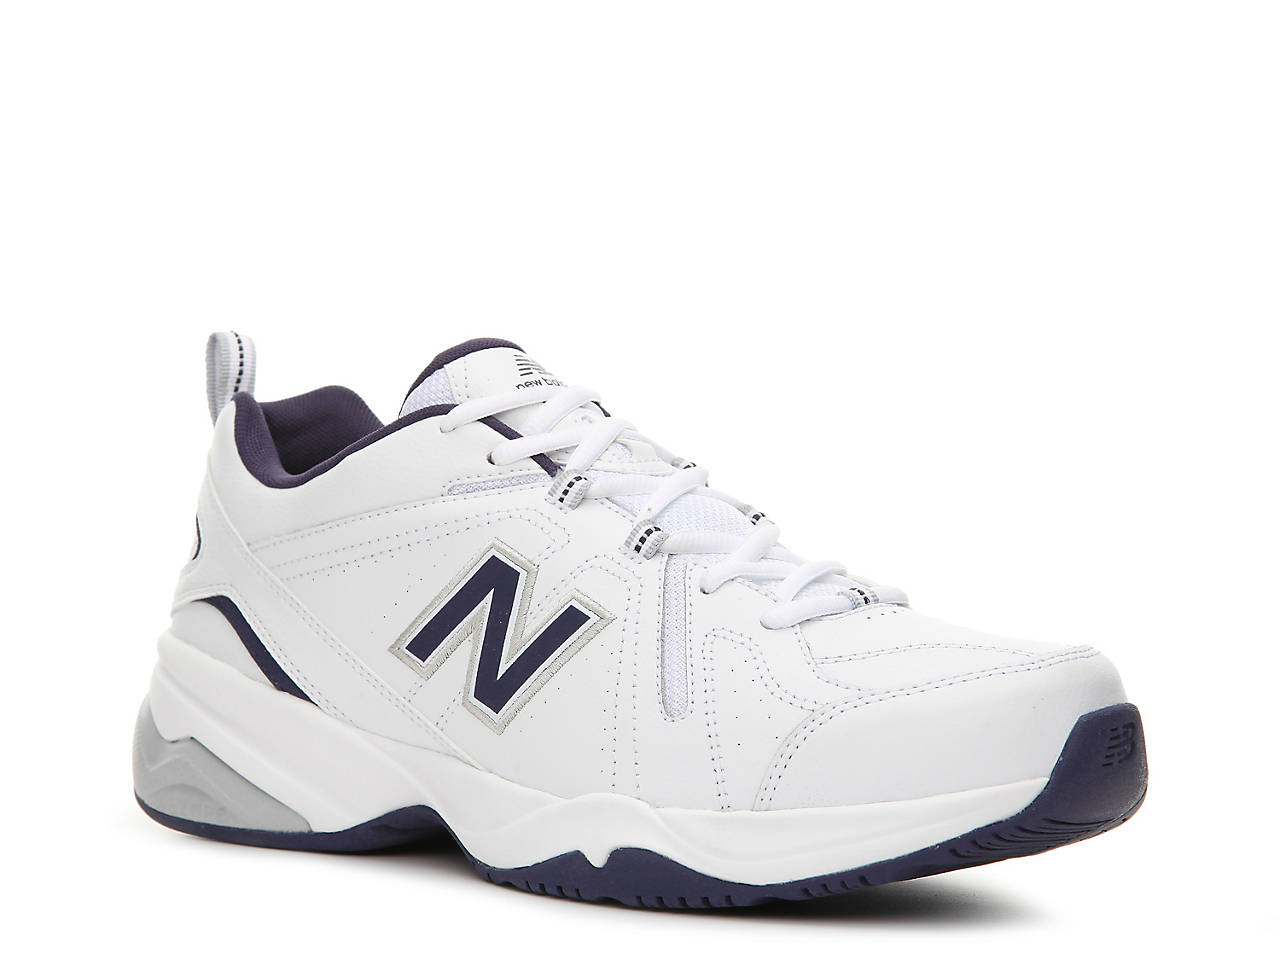 40c9aee4f285a New Balance 608 v4 Training Shoe - Men s Men s Shoes